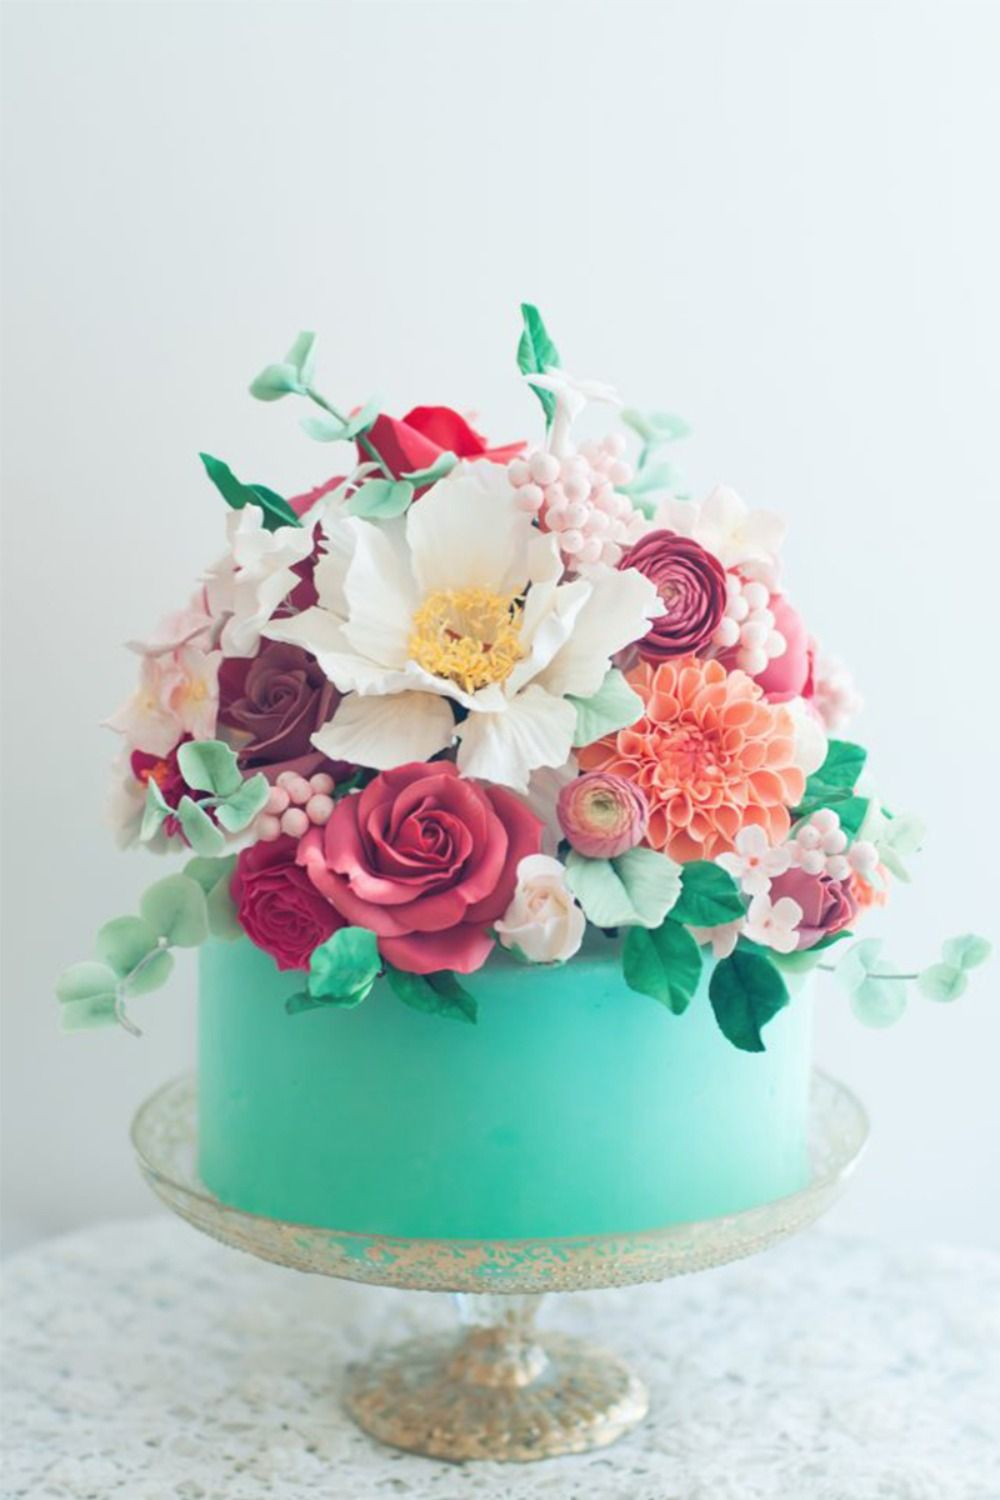 25 Sweetheart Wedding Cakes Floral Cake Aqua Color And Edible Flowers